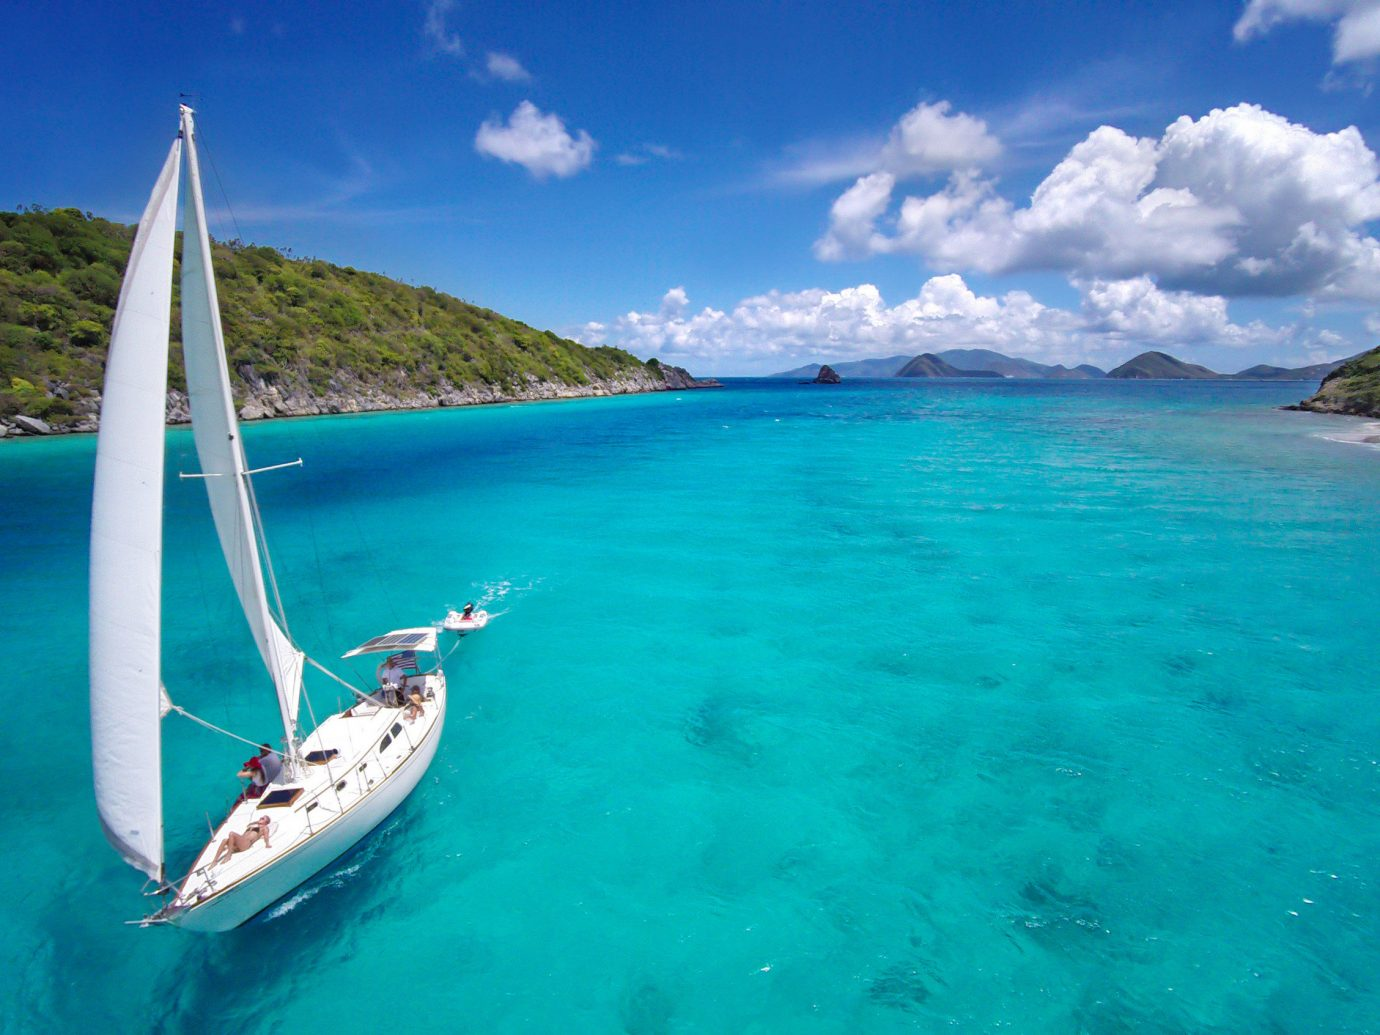 Trip Ideas water sky outdoor Boat caribbean Sea vehicle mountain watercraft vacation Ocean Lagoon bay Island cape sailing boating sailing vessel day